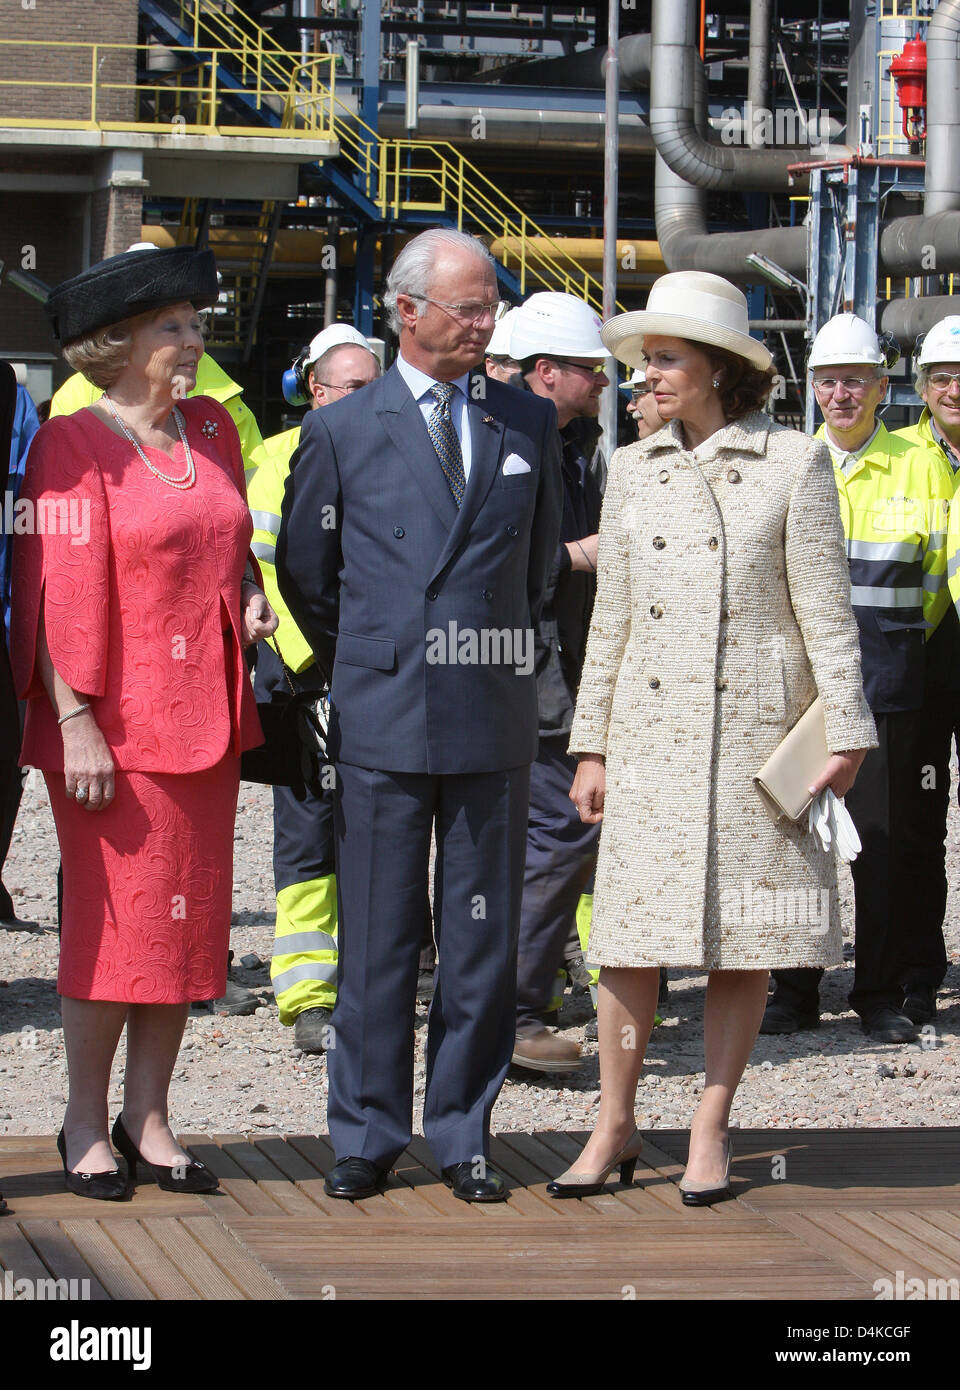 (L-R) Queen Beatrix of the Netherlands, King Carl XVI Gustaf of Sweden and Queen Silvia of Sweden visit BIO MCN, - Stock Image